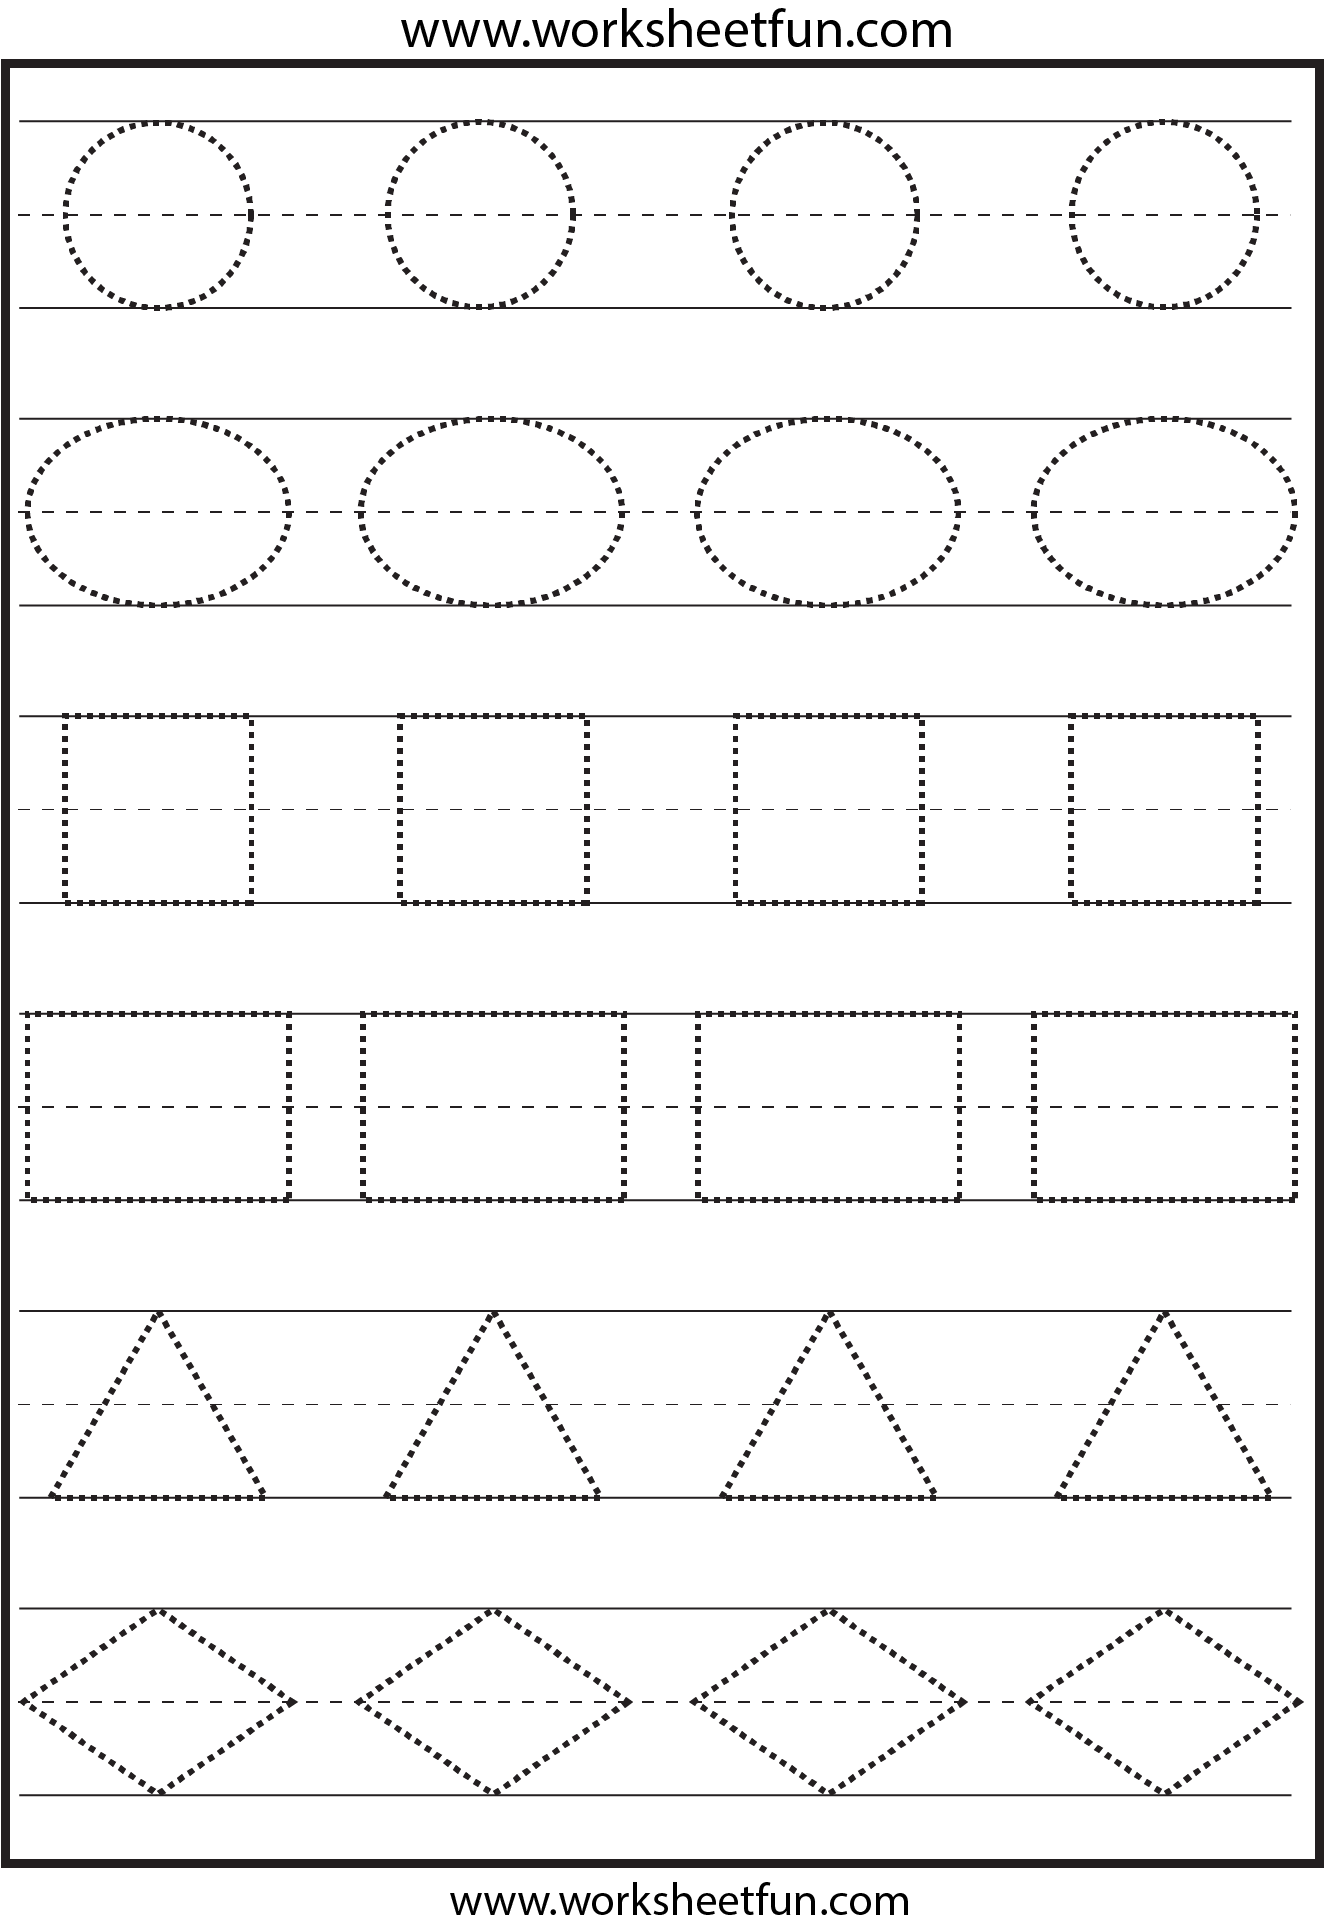 Worksheets Tracing Shapes Worksheets tracing shapes this is not the right image ones on page preschool worksheets shapes